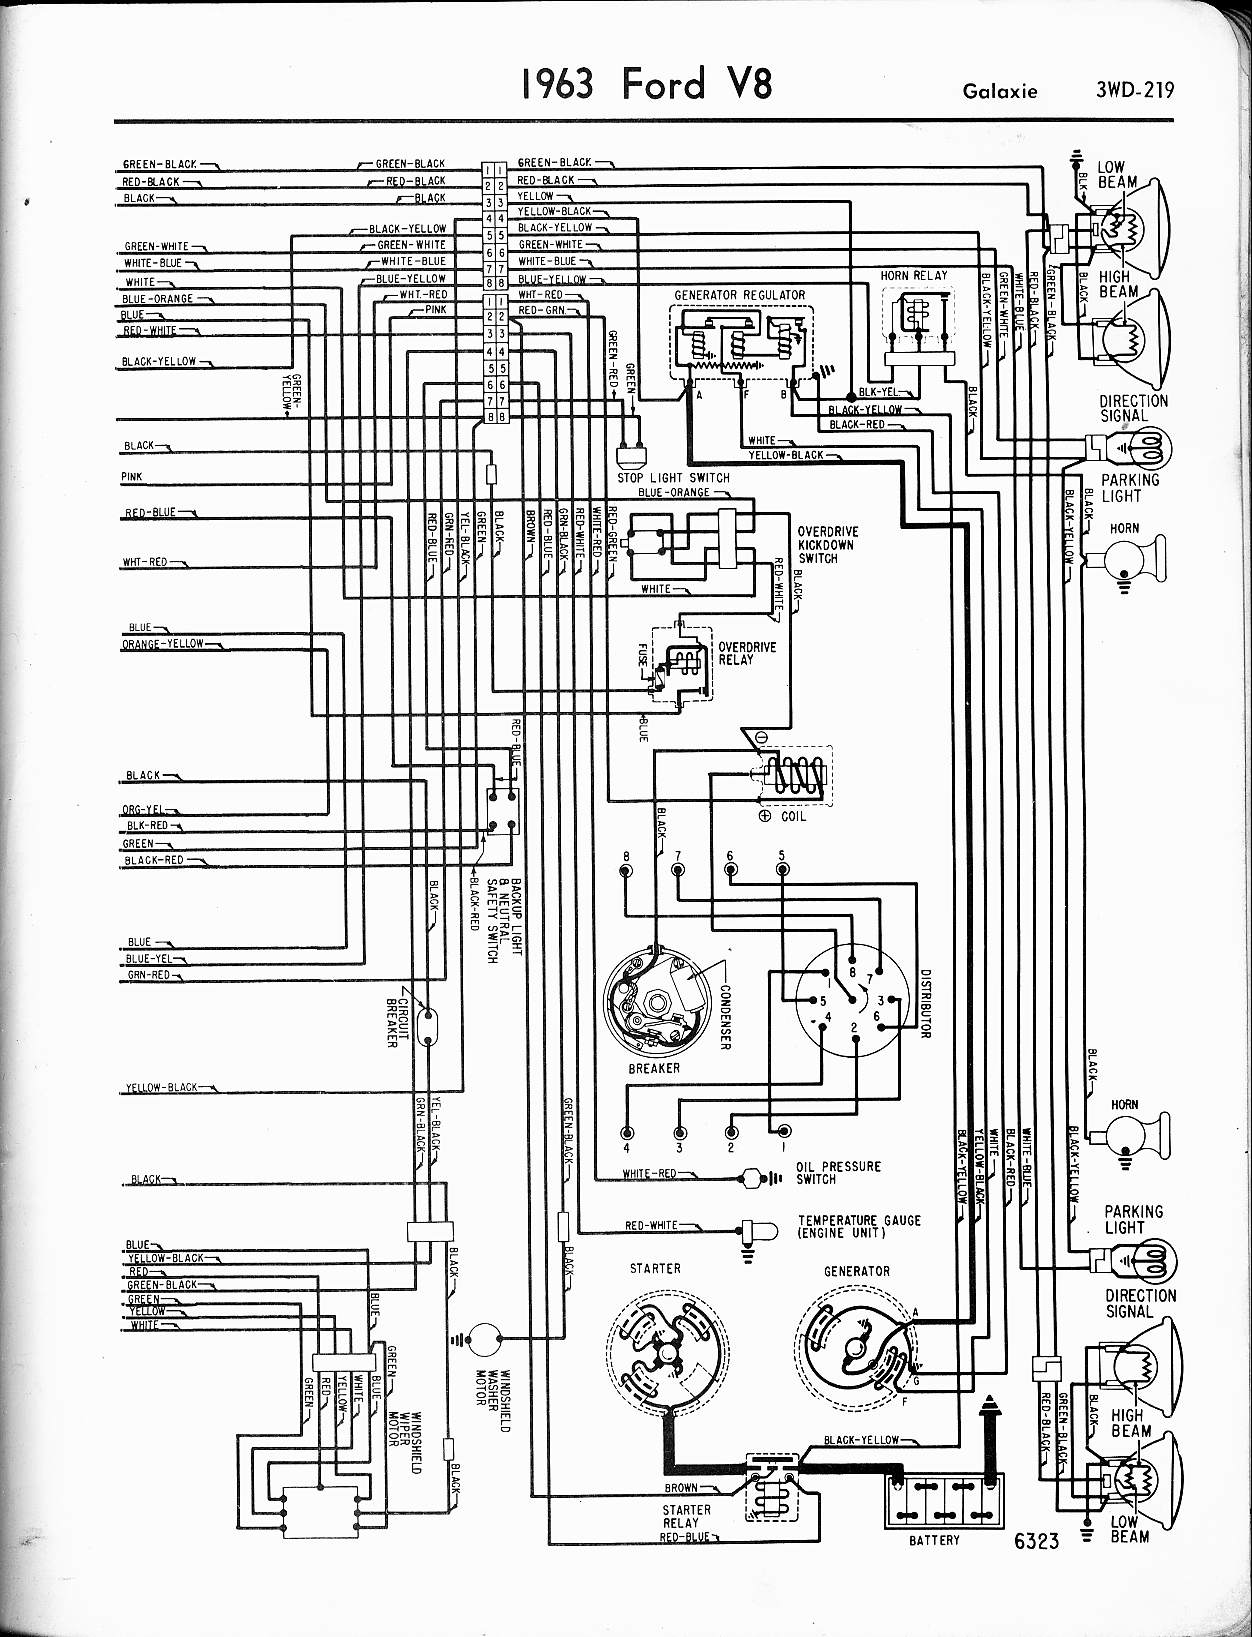 65 Ford Galaxie Fuse Box - Wiring Diagrams  Ford Headlight Wiring Diagram on jeep cj headlight switch diagram, headlight socket diagram, ford headlight adjustment, 1956 chevy headlight switch diagram, ford rear brakes diagram, ford wiring schematic, ford electrical wiring diagrams, ford truck electrical diagrams, ford f100 wiring diagrams, ford 302 distributor wiring, ford radiator diagram, ford headlight parts, ford headlight assembly, ford ignition coil diagram, ford gauge diagram, ford headlight relay, ford abs brake problems, ford headlight switch, ford f-250 electrical diagram, ford fuse diagram,